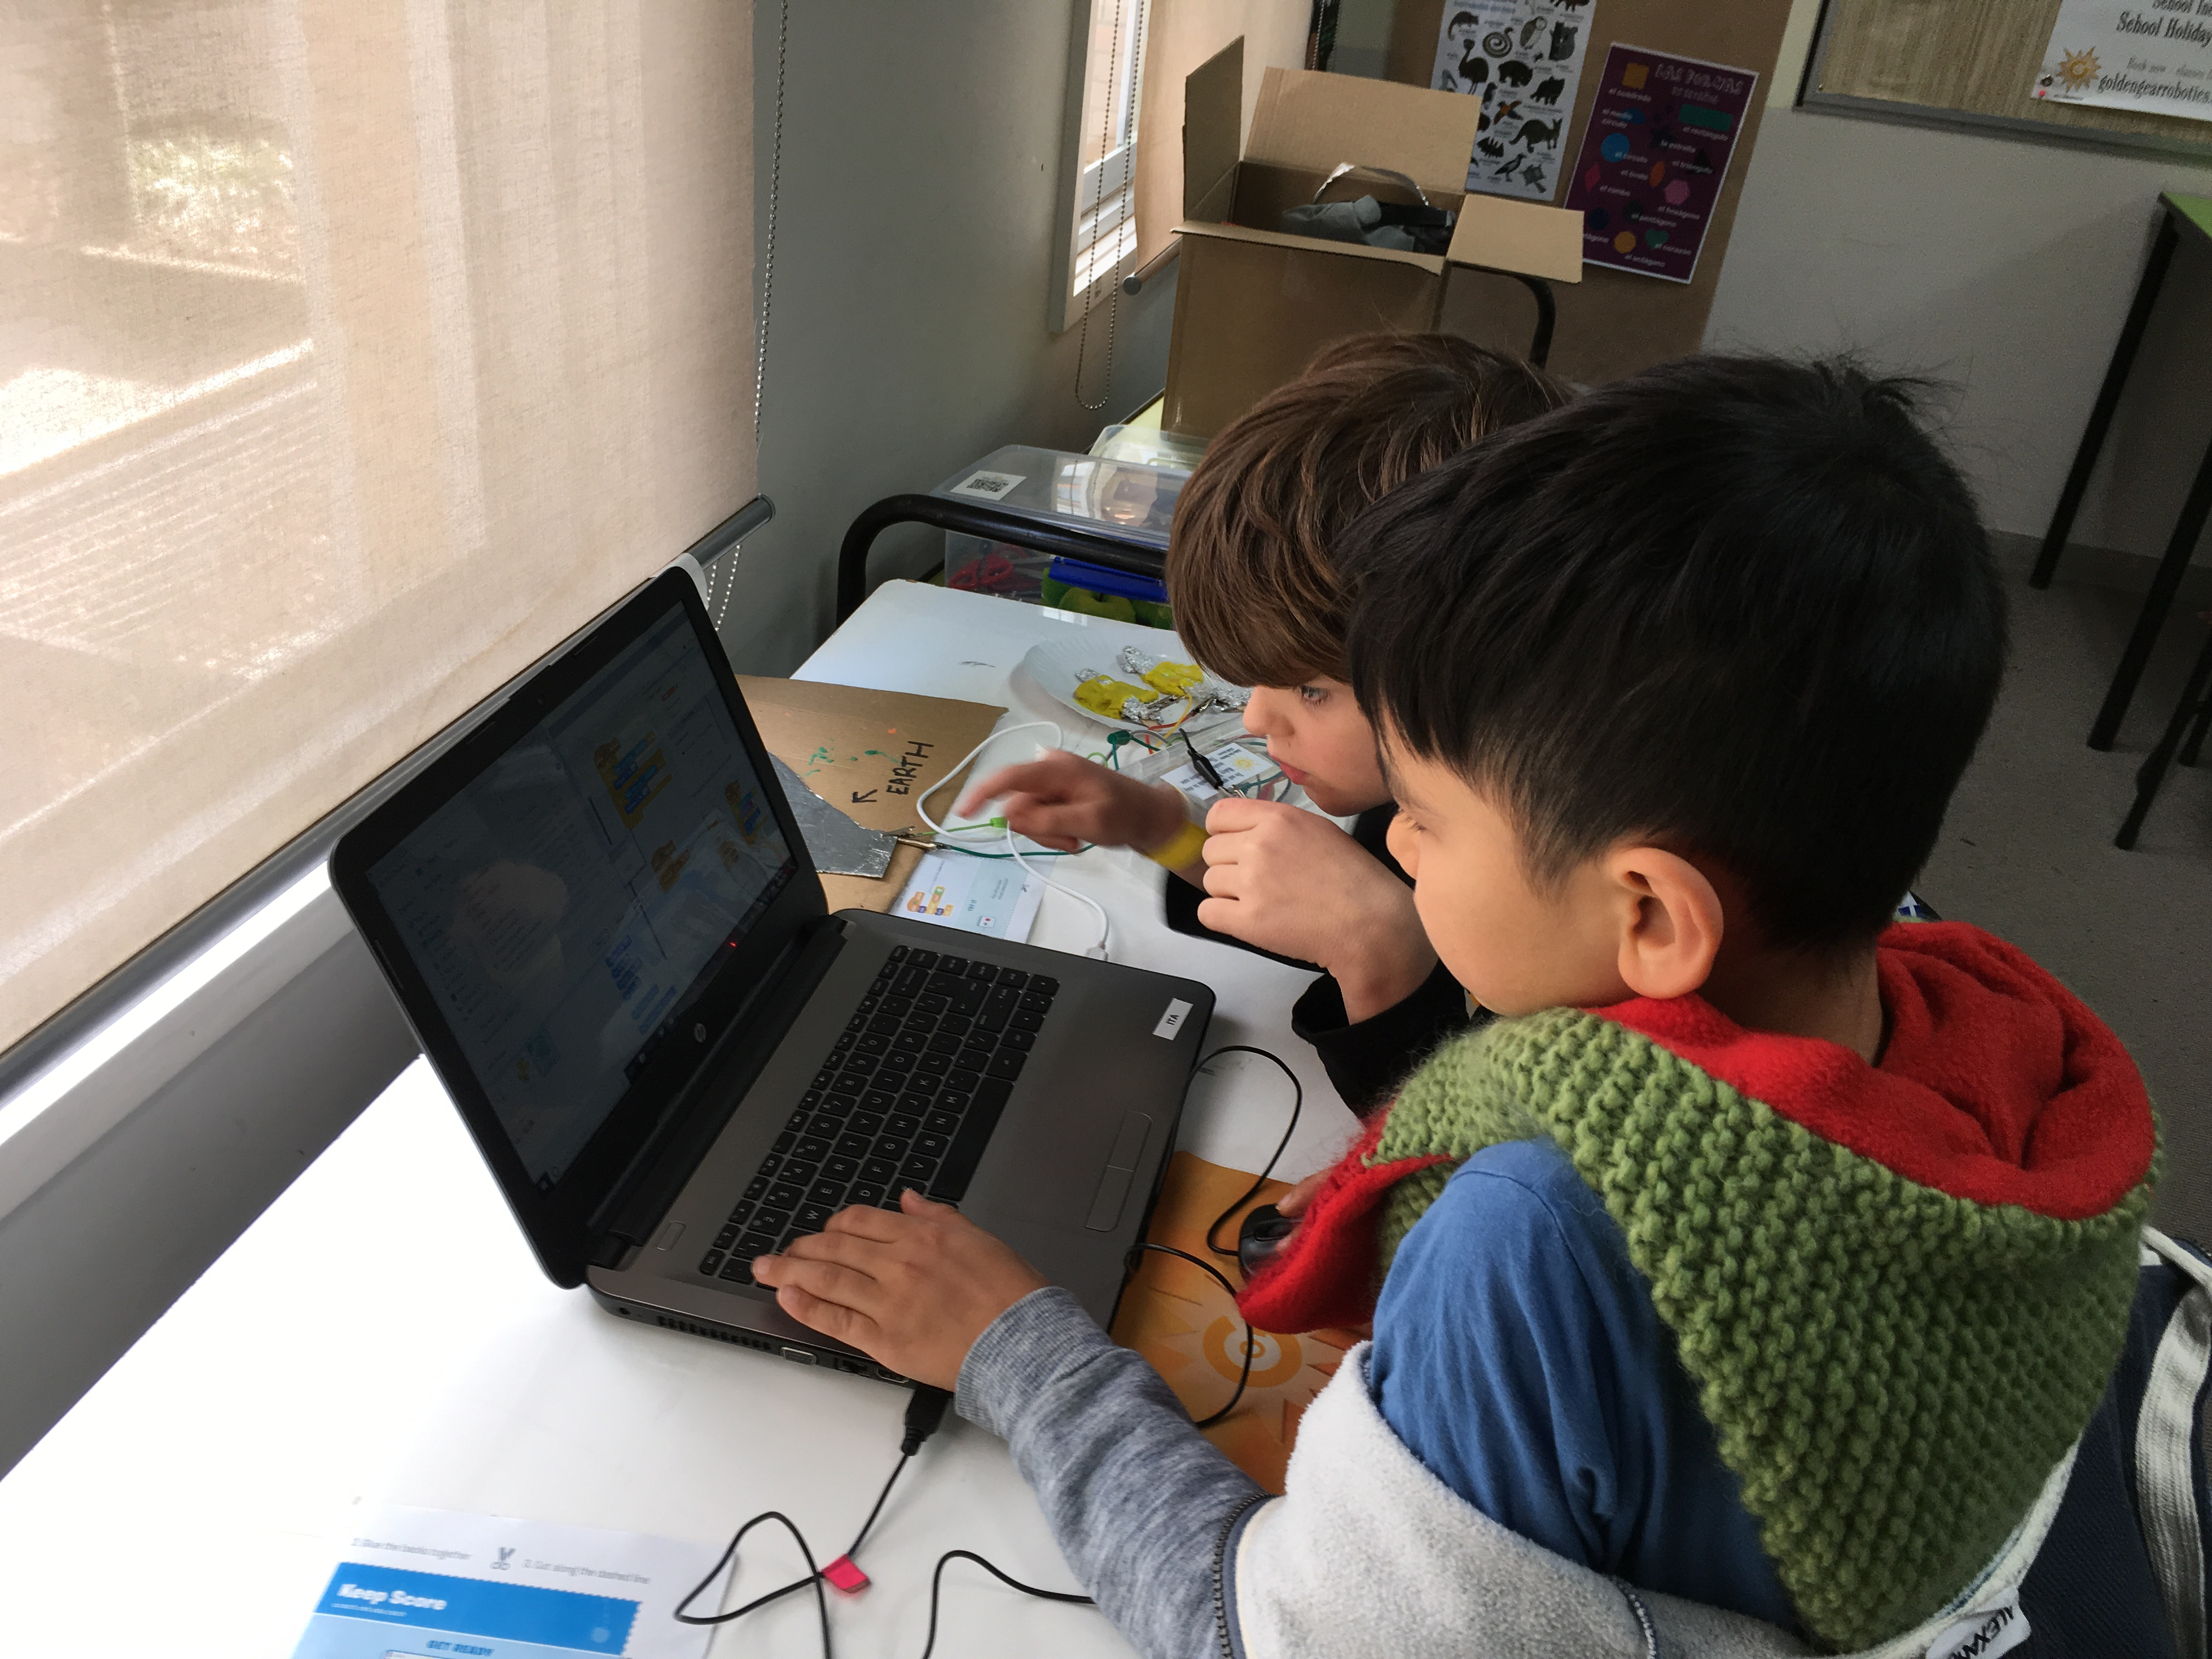 Learn to code with Scratch workshop